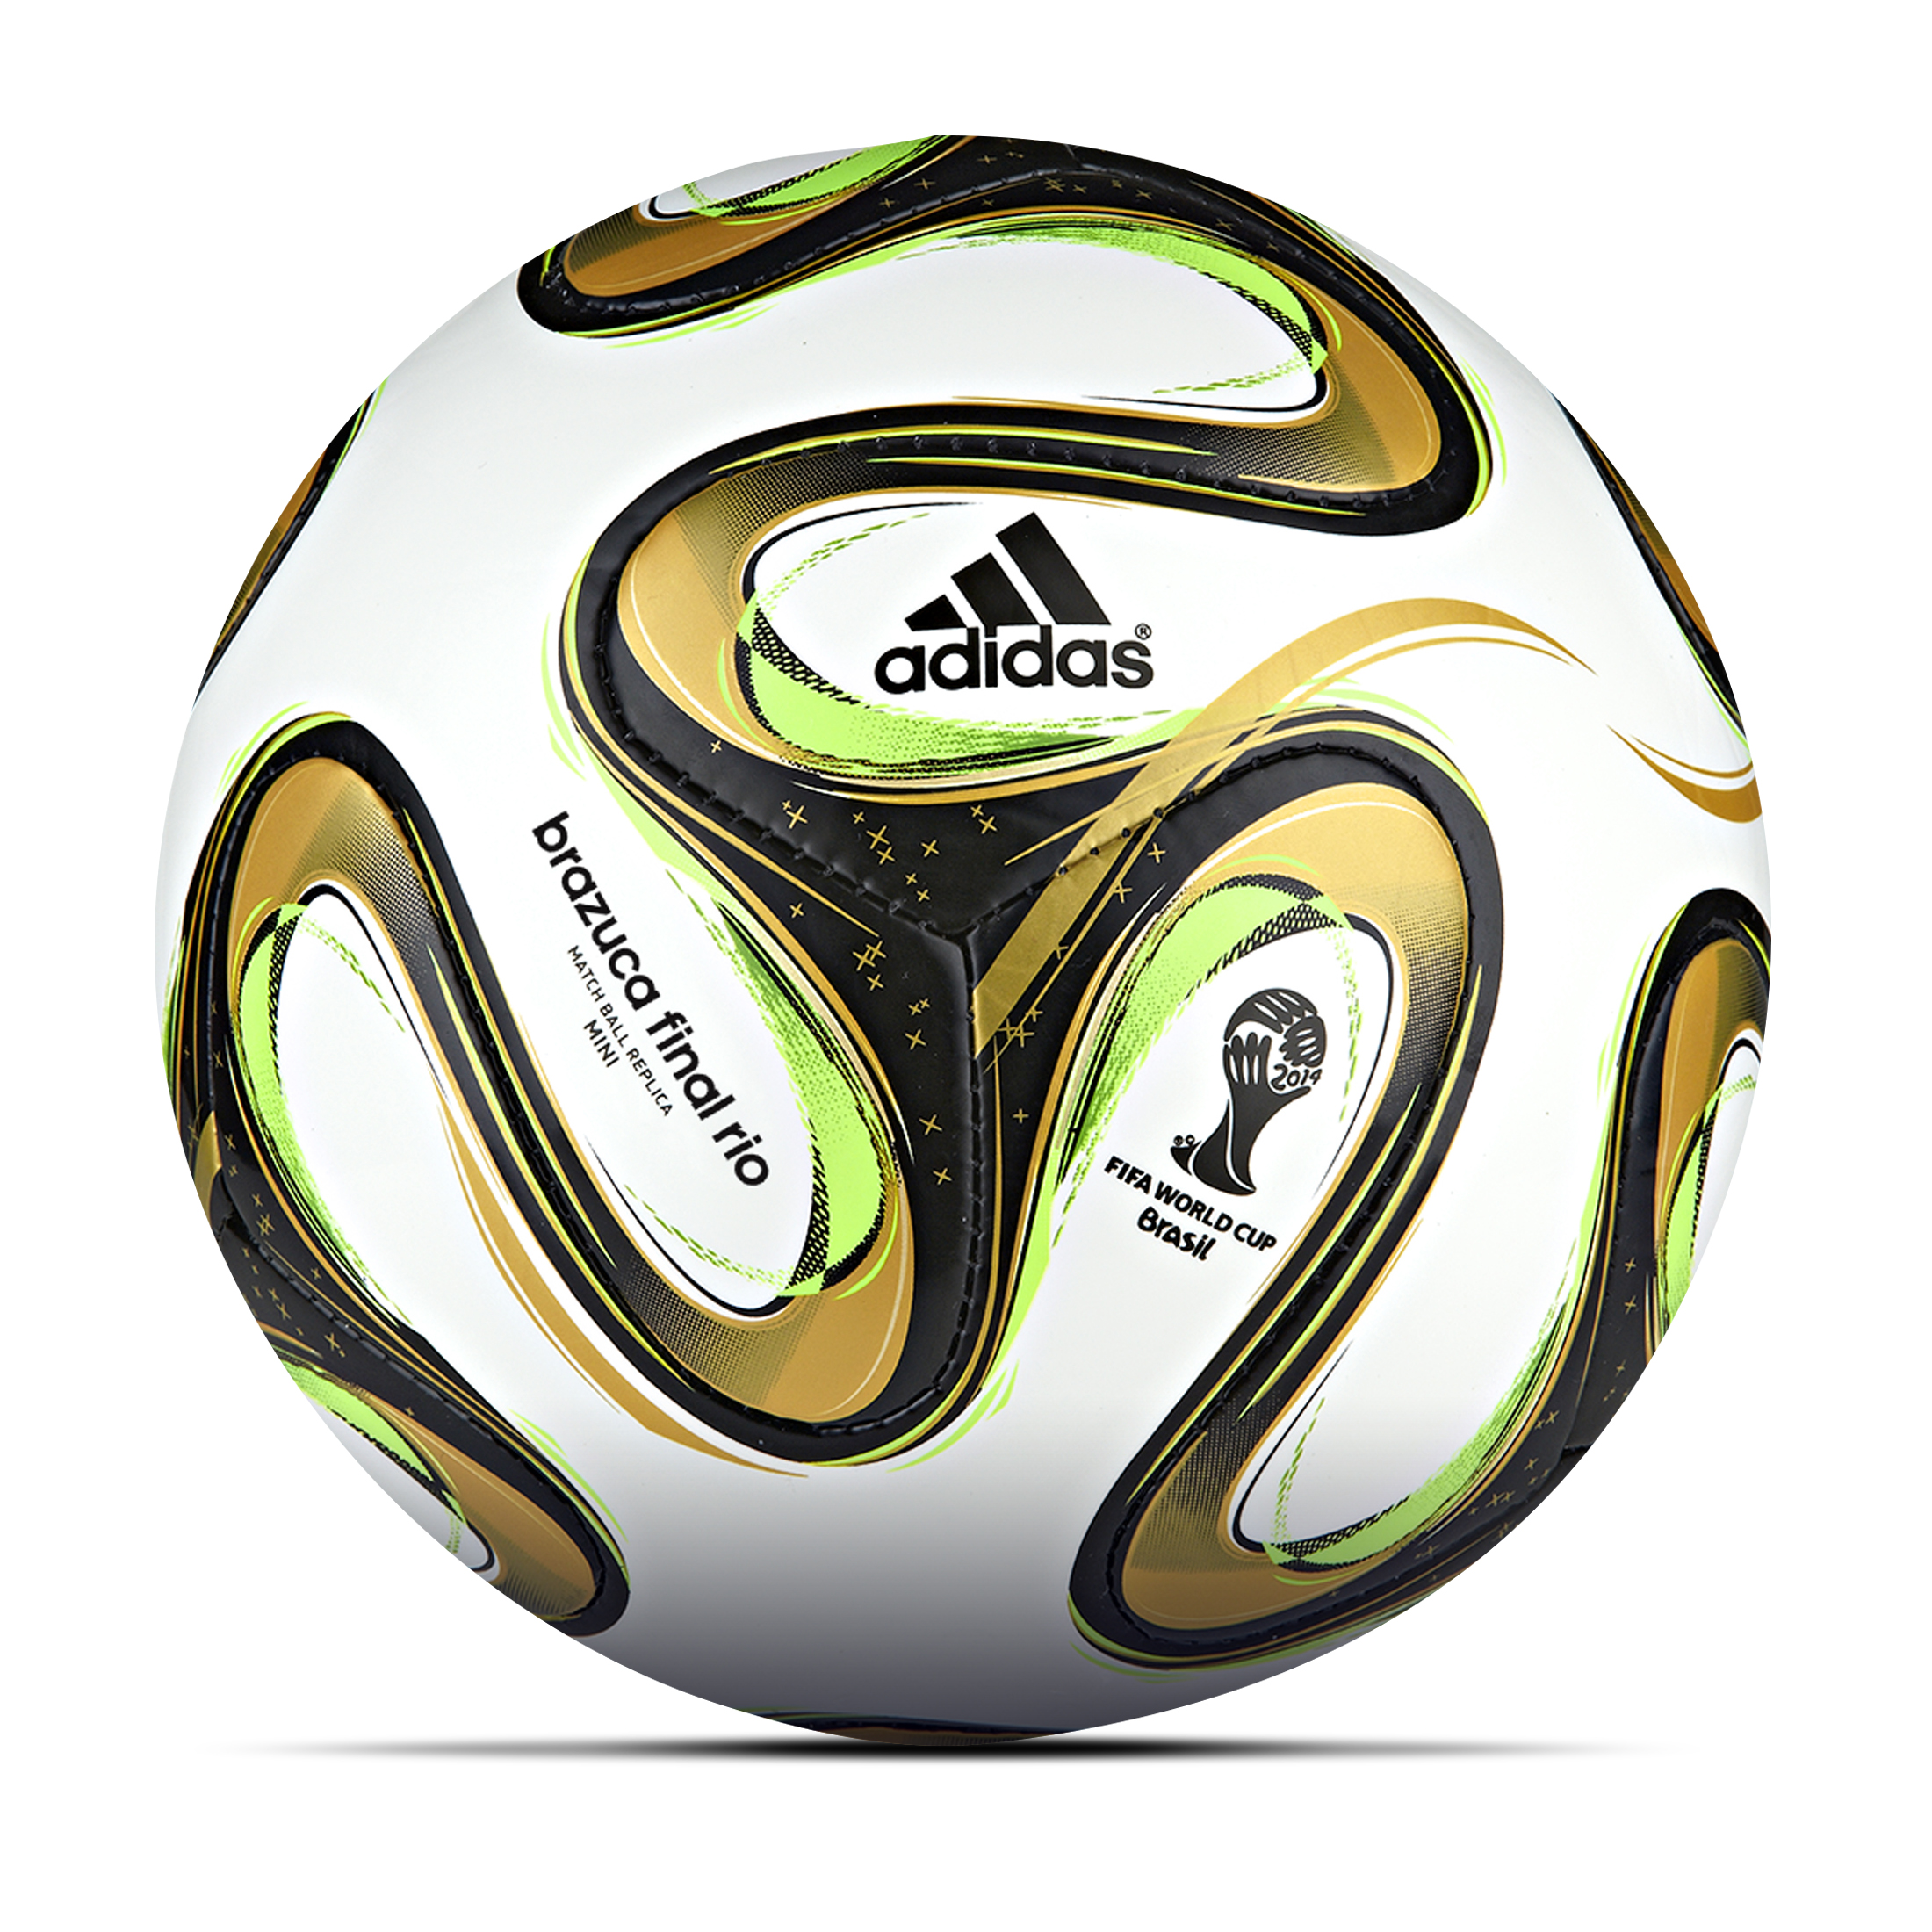 Adidas Brazuca World Cup 2014 Final Mini Football